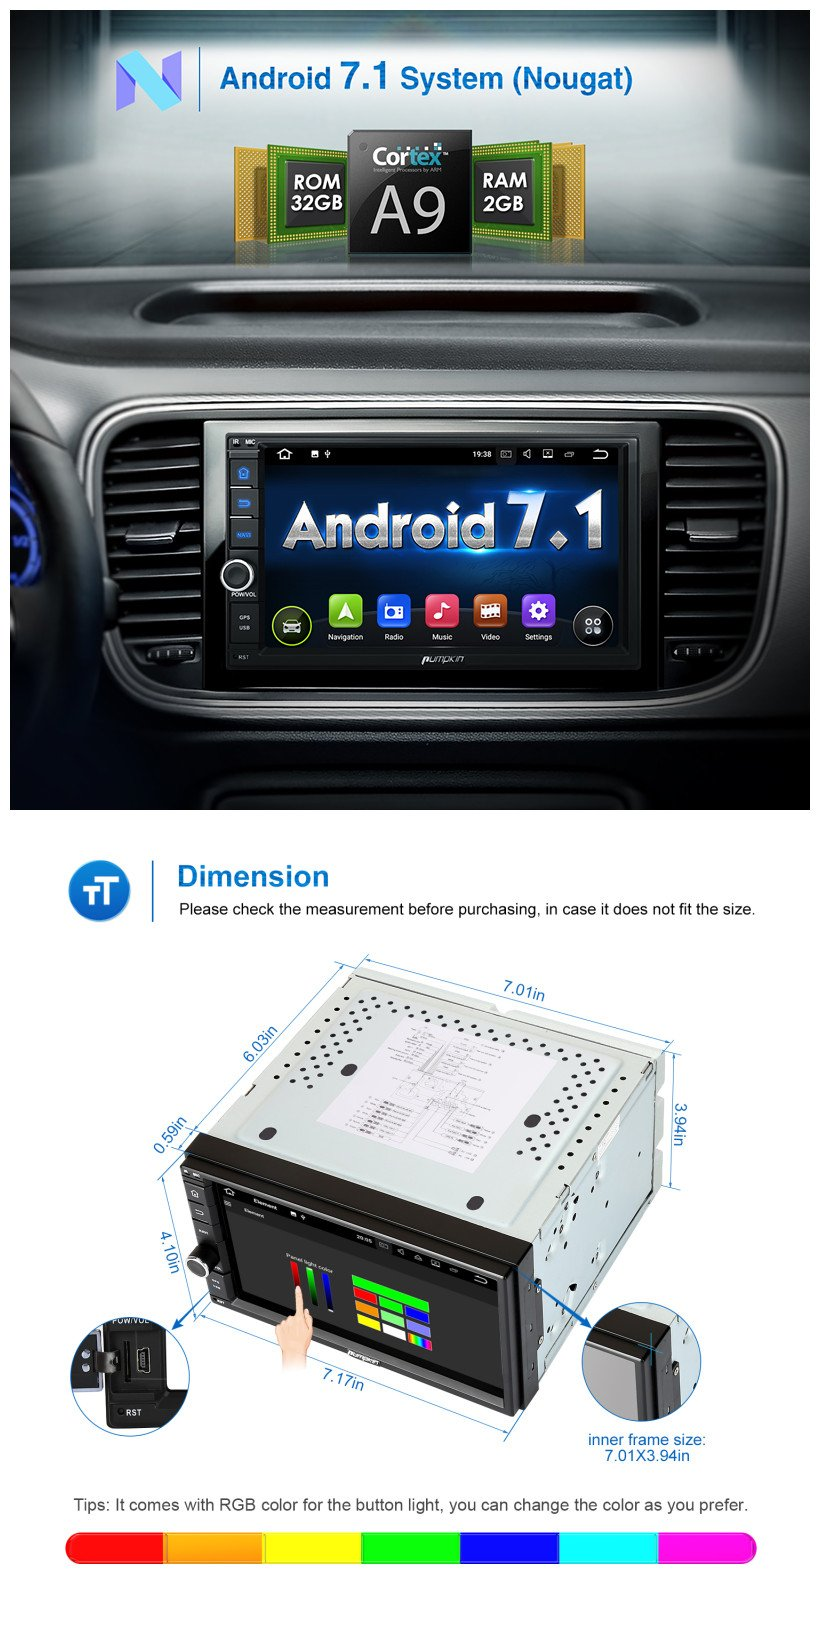 2GB 32GB Android 7.1 Car Stereo - Double Din Bluetooth 4.0 Radio - Support Fast Boot, GPS Navigation, USB/SD, 3G WIFI, Mirror Link, Backup Camera, AV-Out, OBD2, DVR, Subwoofer by PUMPKIN (Image #2)